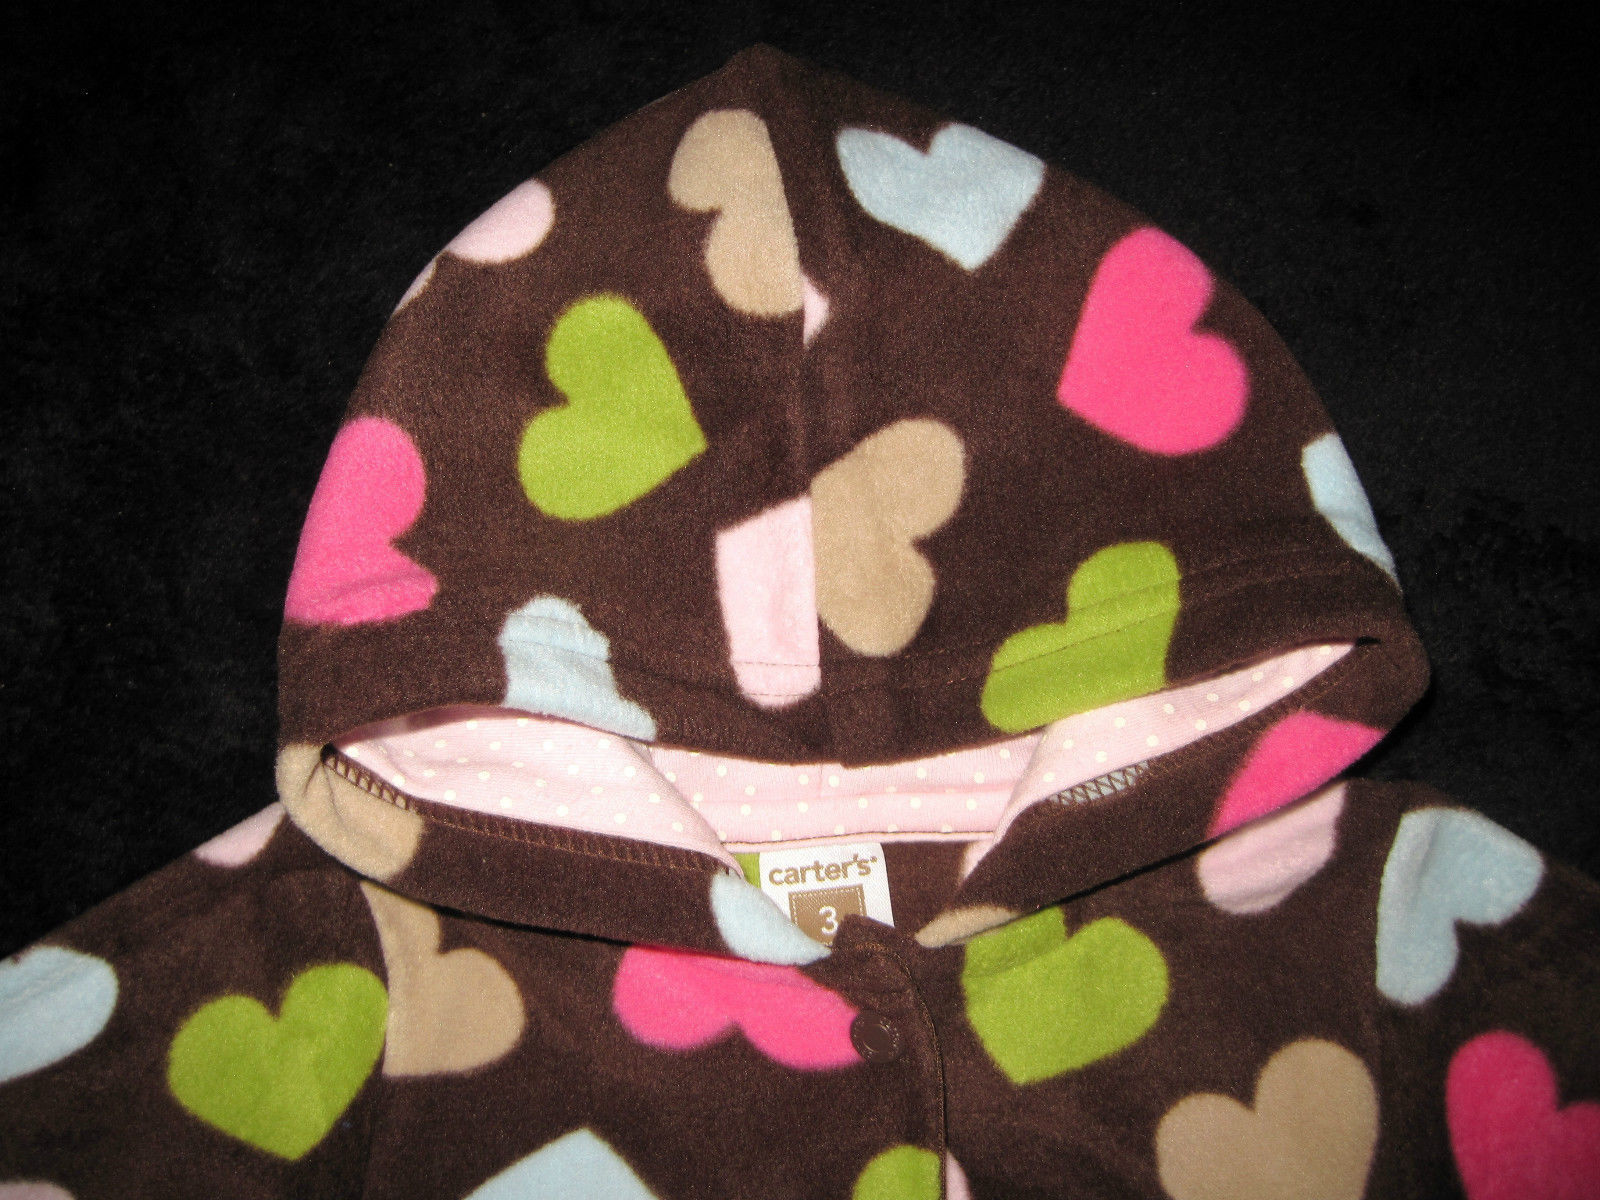 GIRLS 3 MONTHS - Carter's Cuddly Cute - Pink & Hearts on Brown FLEECE PLAYSET